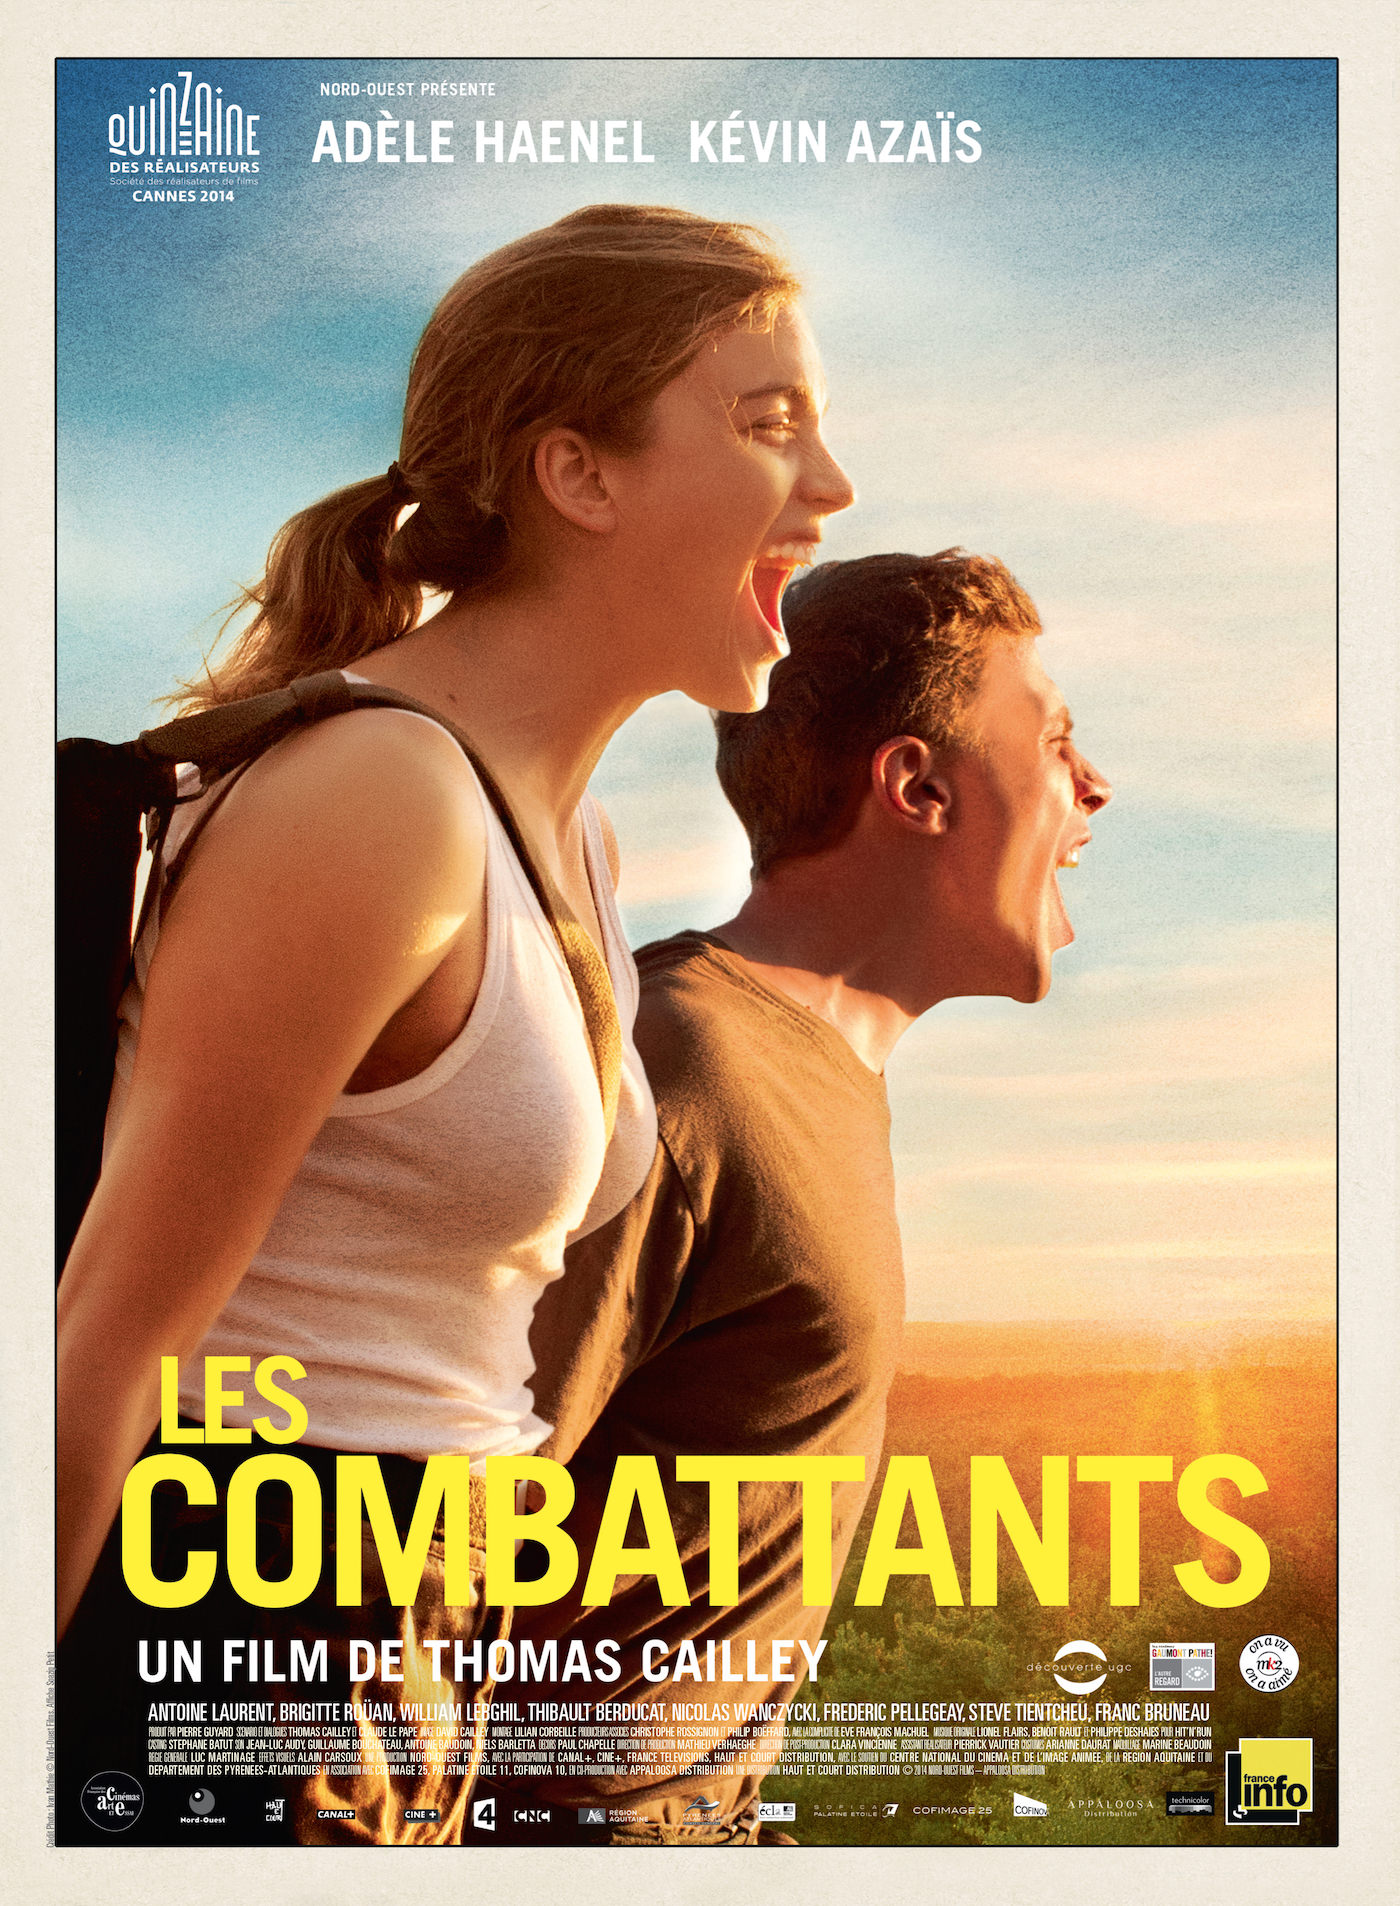 Les combattants cailley